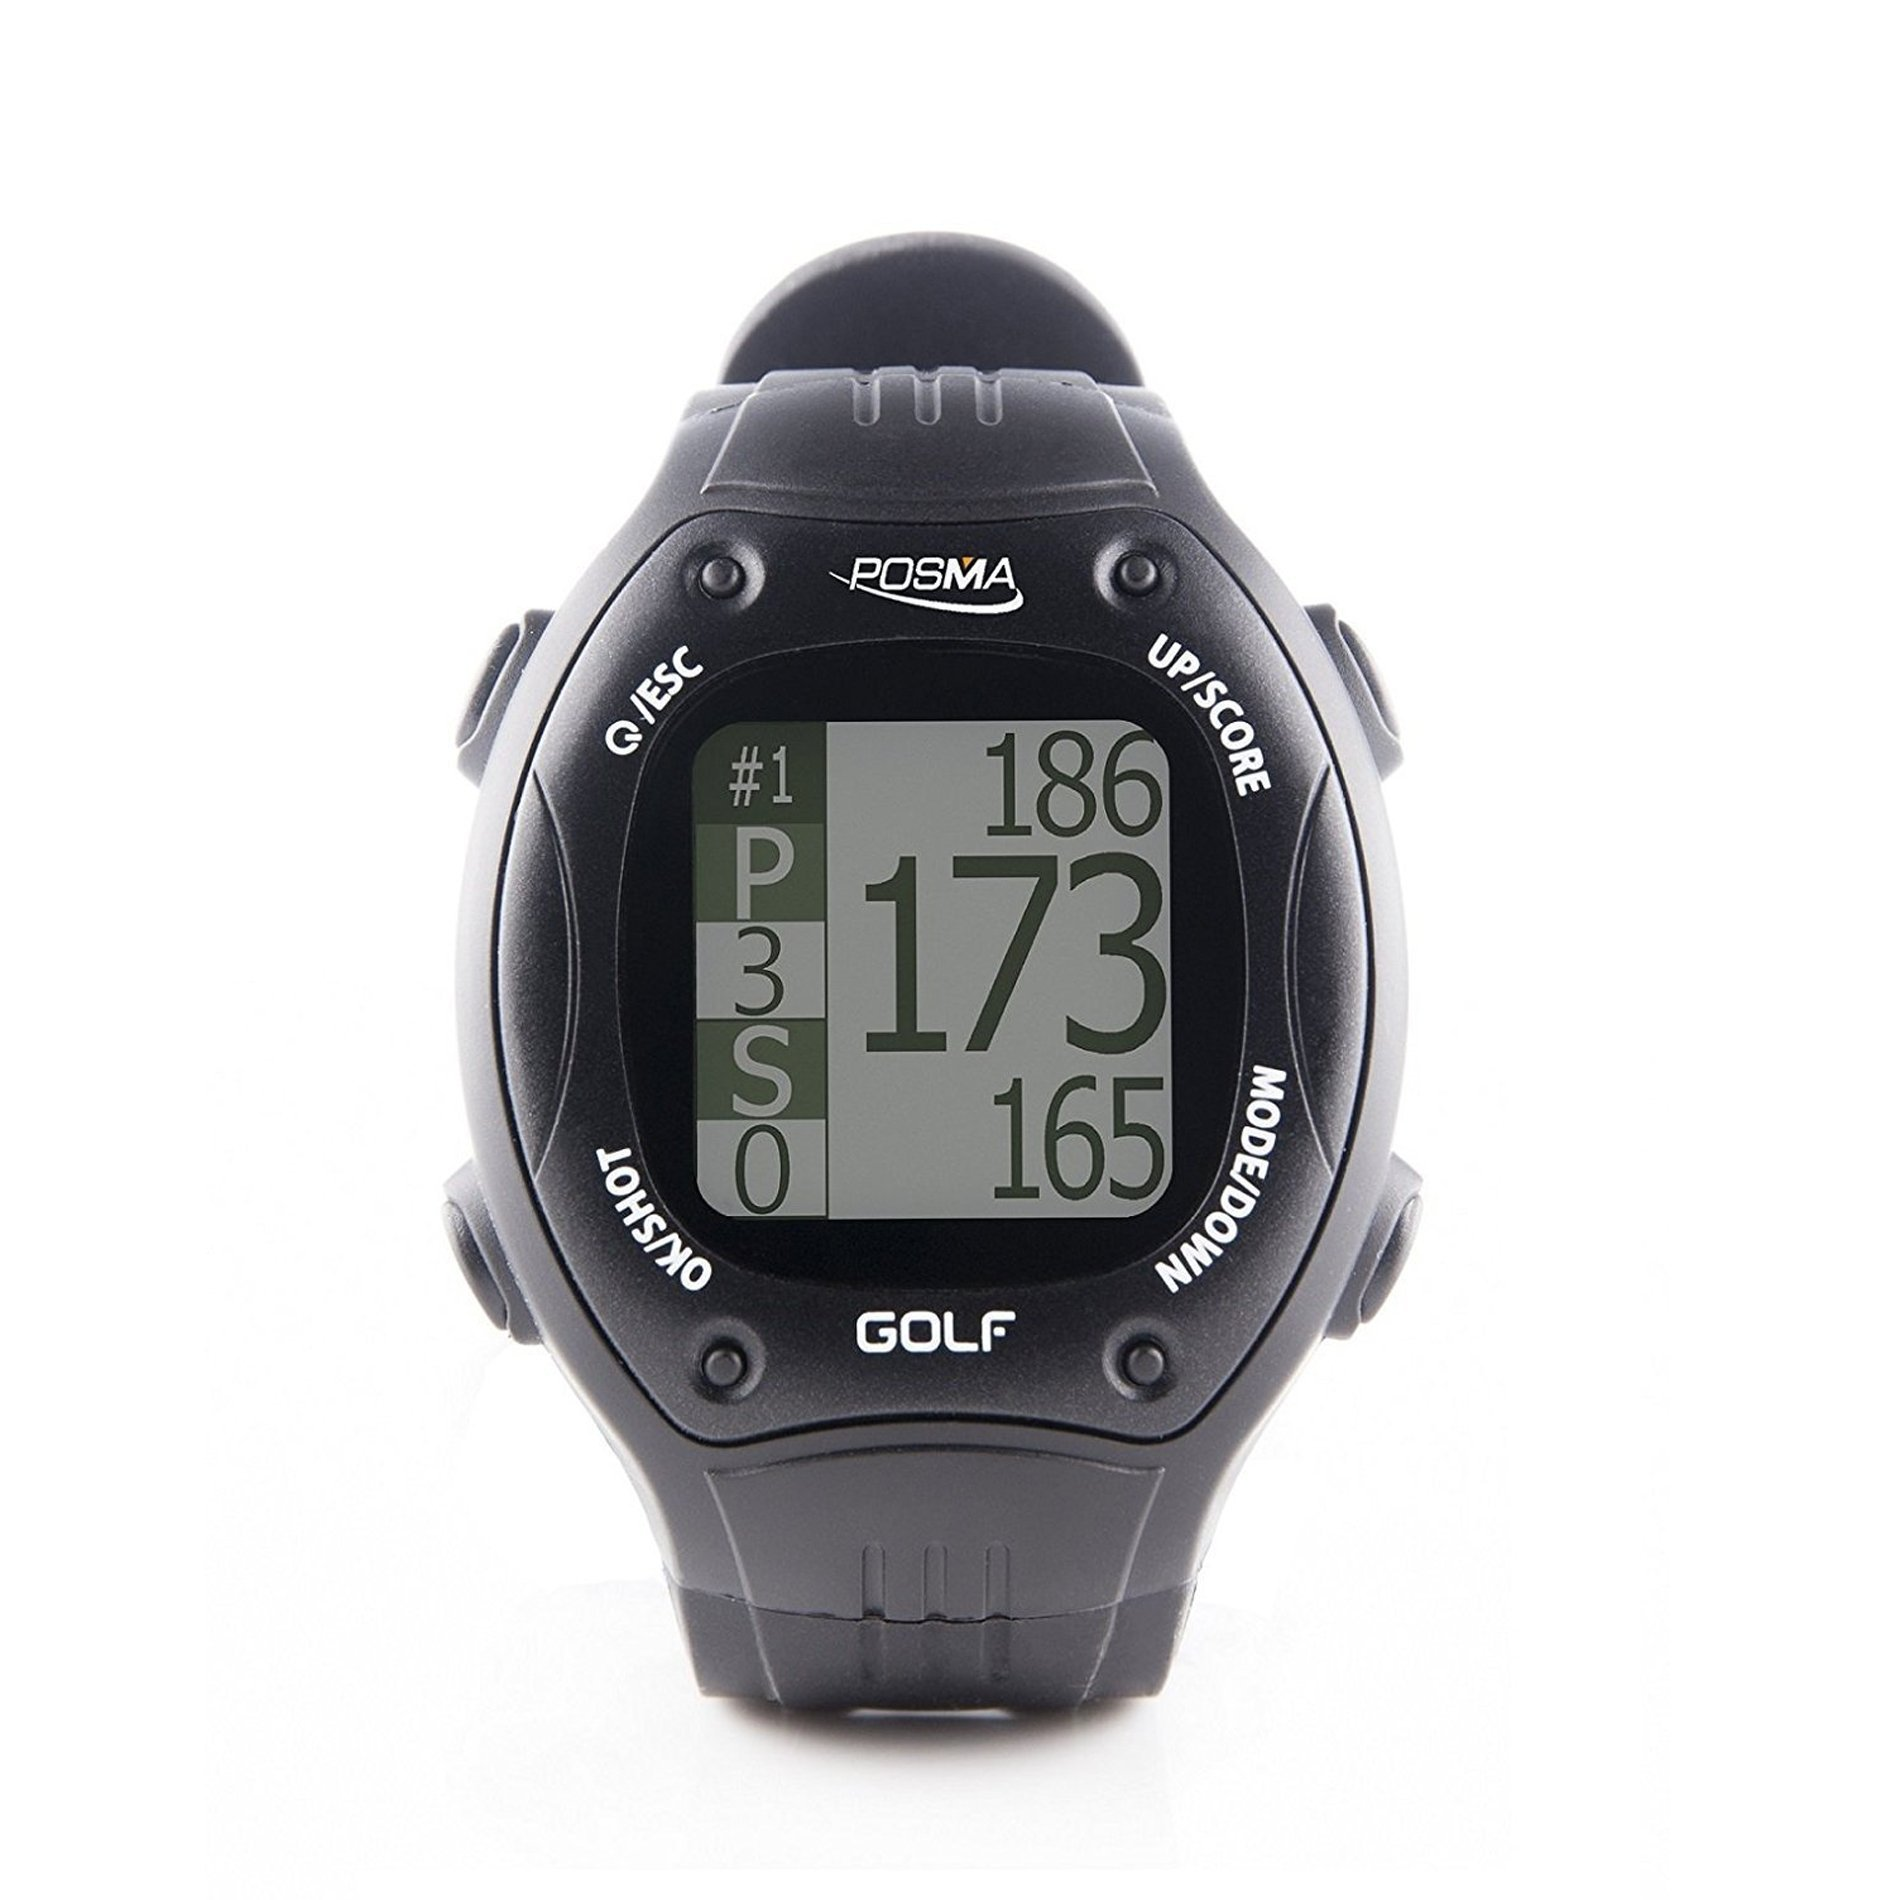 IDS Home POSMA GT1Plus Golf GPS Watch, Golf Band Range Finder, Preloaded Worldwide Golf Courses, No Download No Subscription